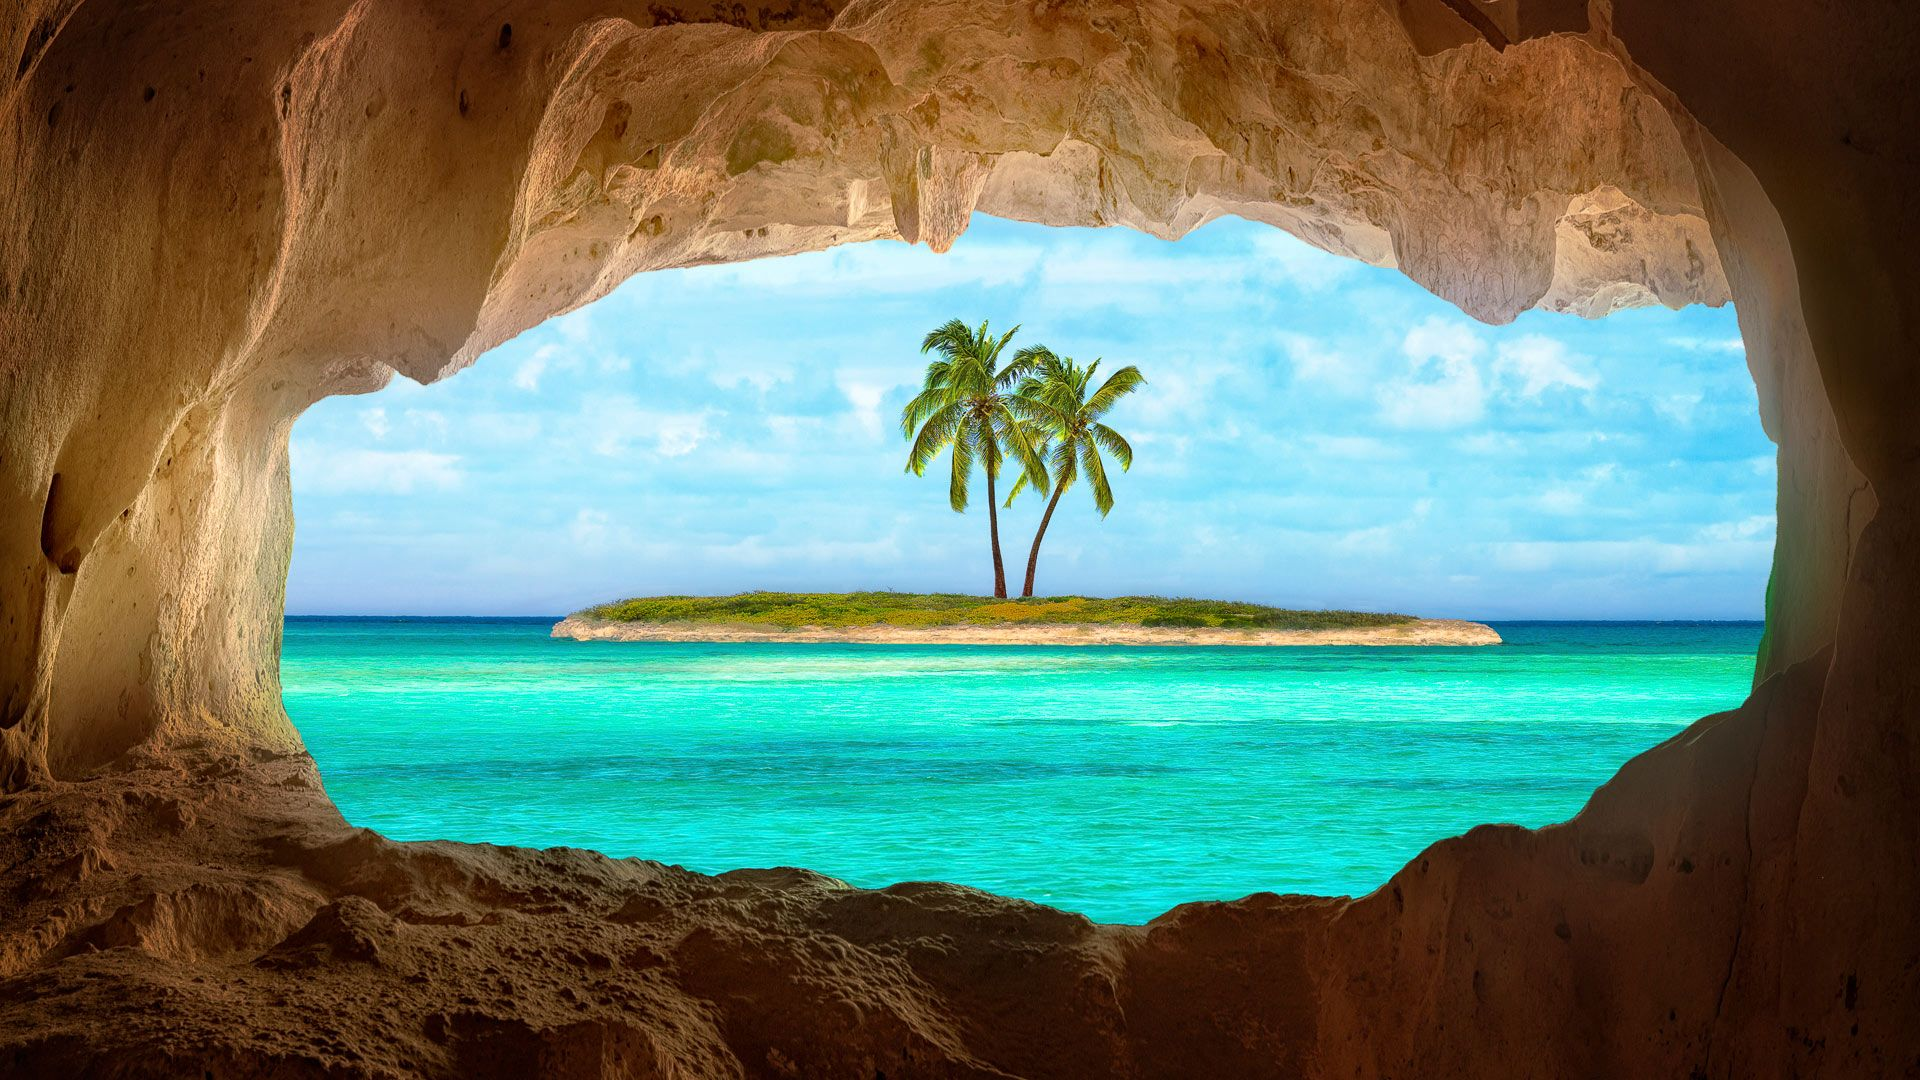 An old cave located on a remote Caribbean Island. [Desktop